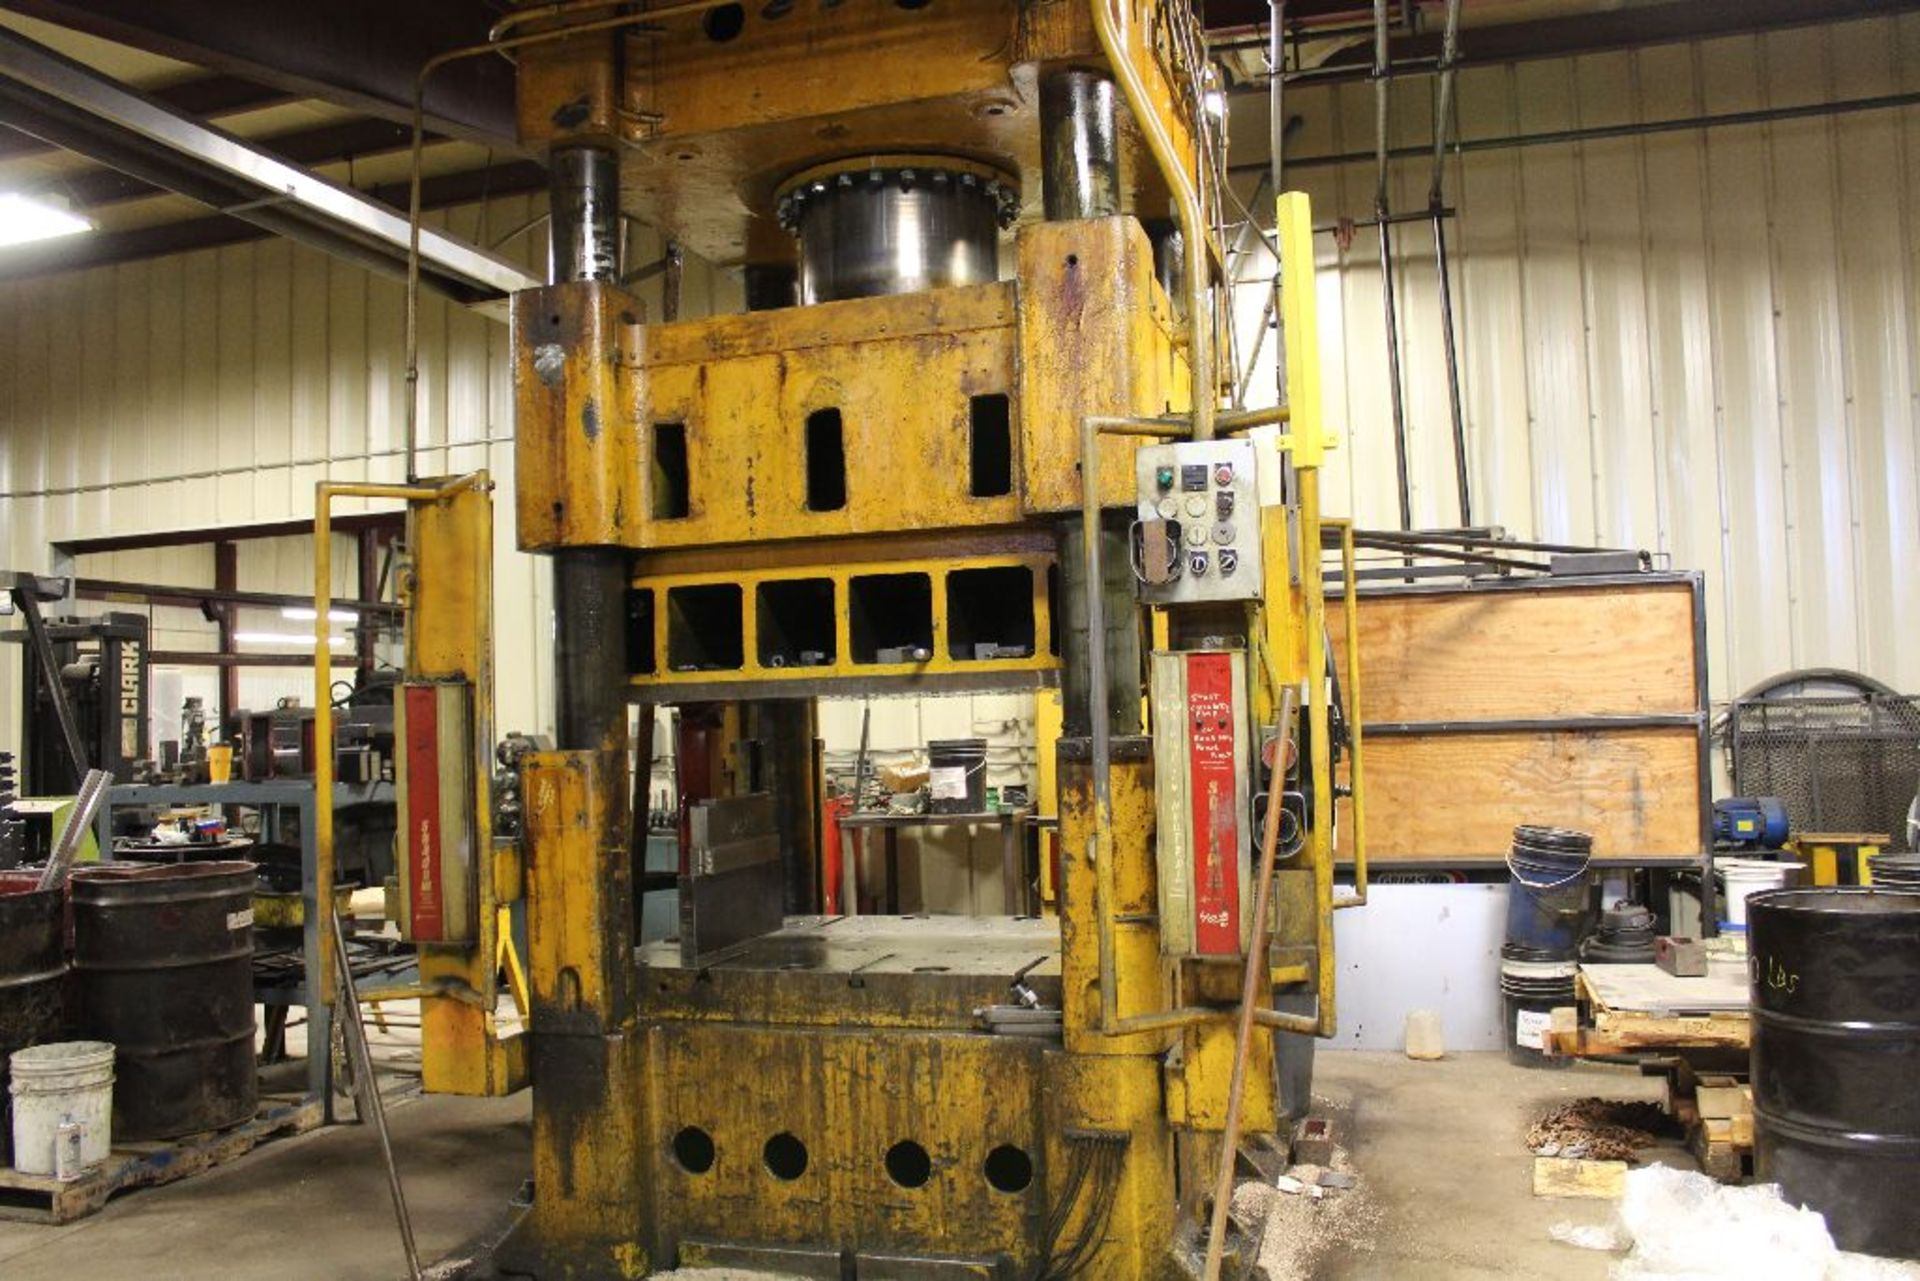 """Lot 033 - Elms hydraulic press, 600 T., 75 hp, air cushion, 44 x 66"""" bed, 6' pit, safety curtain."""